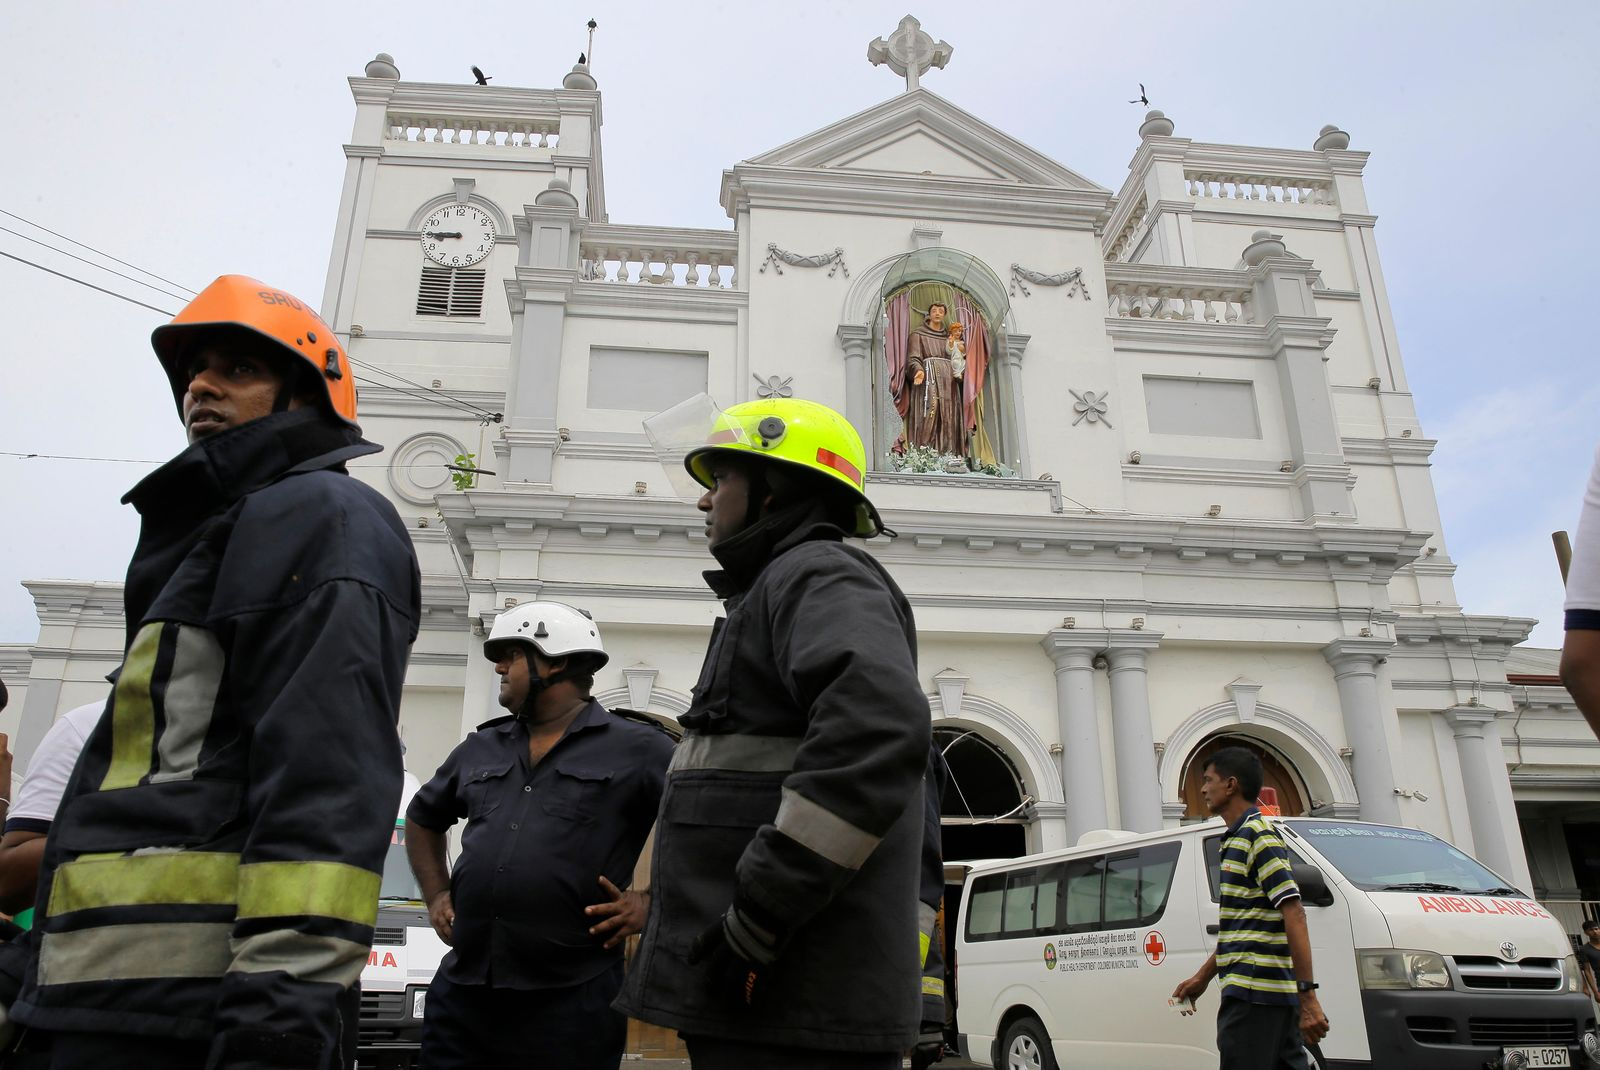 Sri Lankan firefighters stand in the area around St. Anthony's Shrine after a blast in Colombo, Sri Lanka, Sunday, April 21, 2019. Witnesses are reporting two explosions have hit two churches in Sri Lanka on Easter Sunday, causing casualties among worshippers. (AP Photo/Eranga Jayawardena)